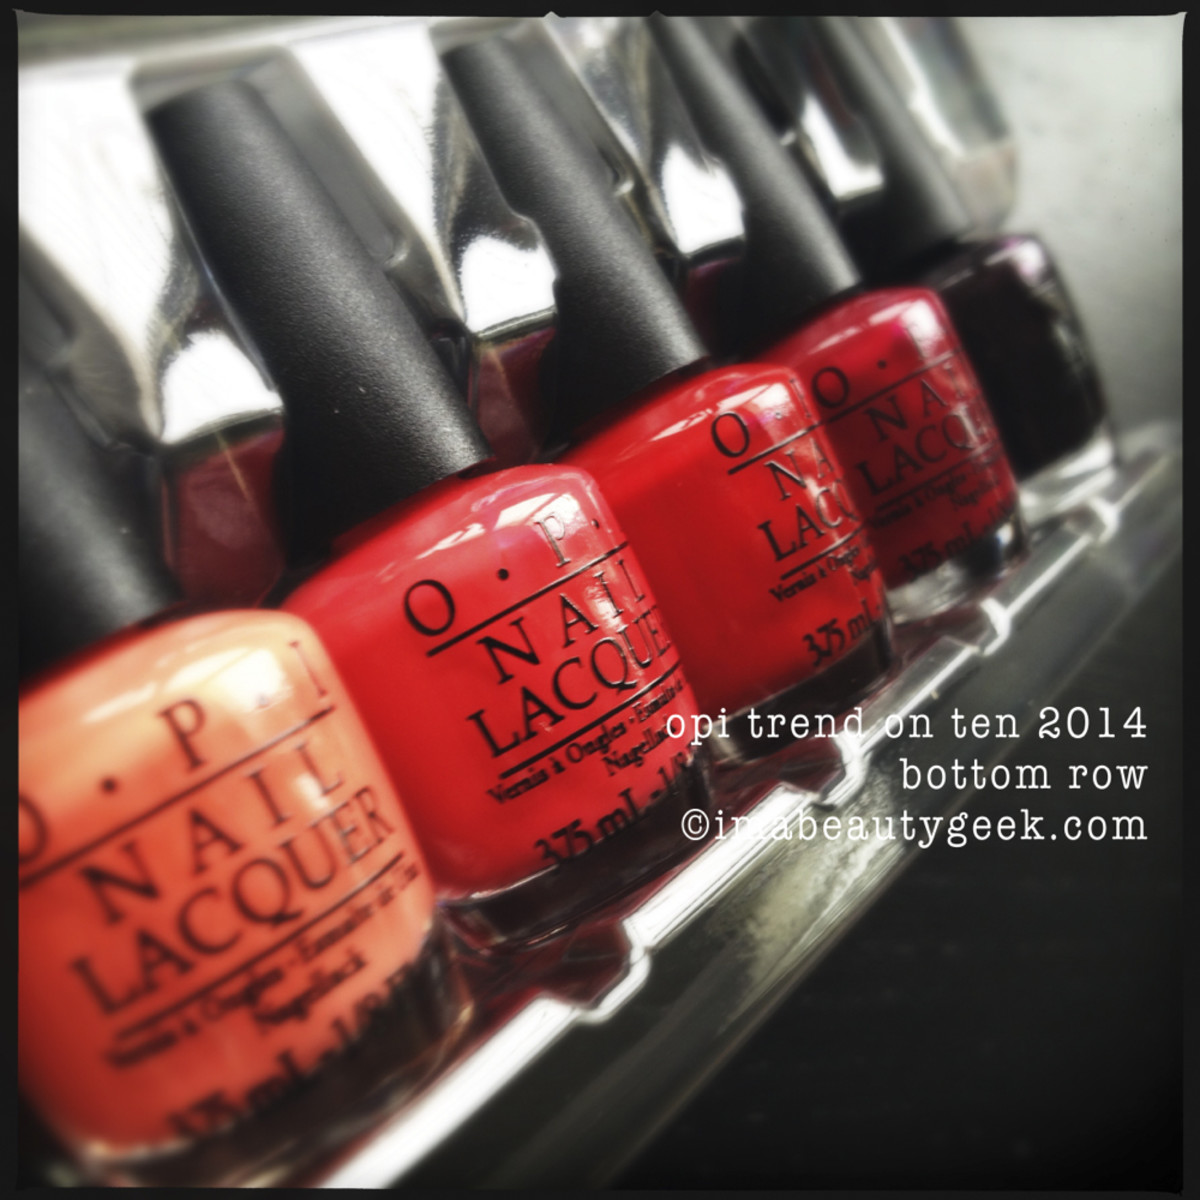 OPI Holiday 2014 Trend on Ten Reds